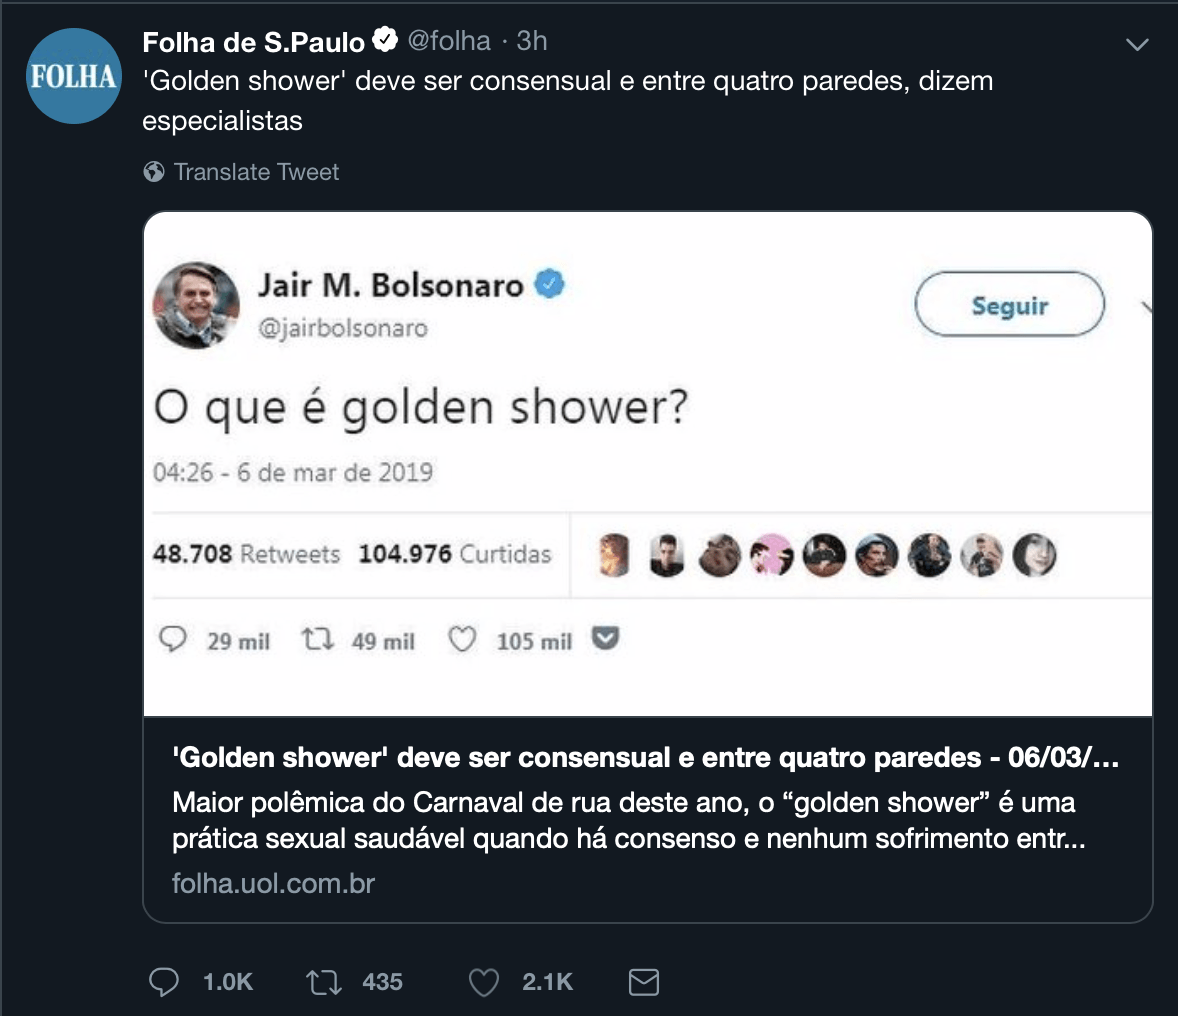 Folha chama especialistas em Golden Shower